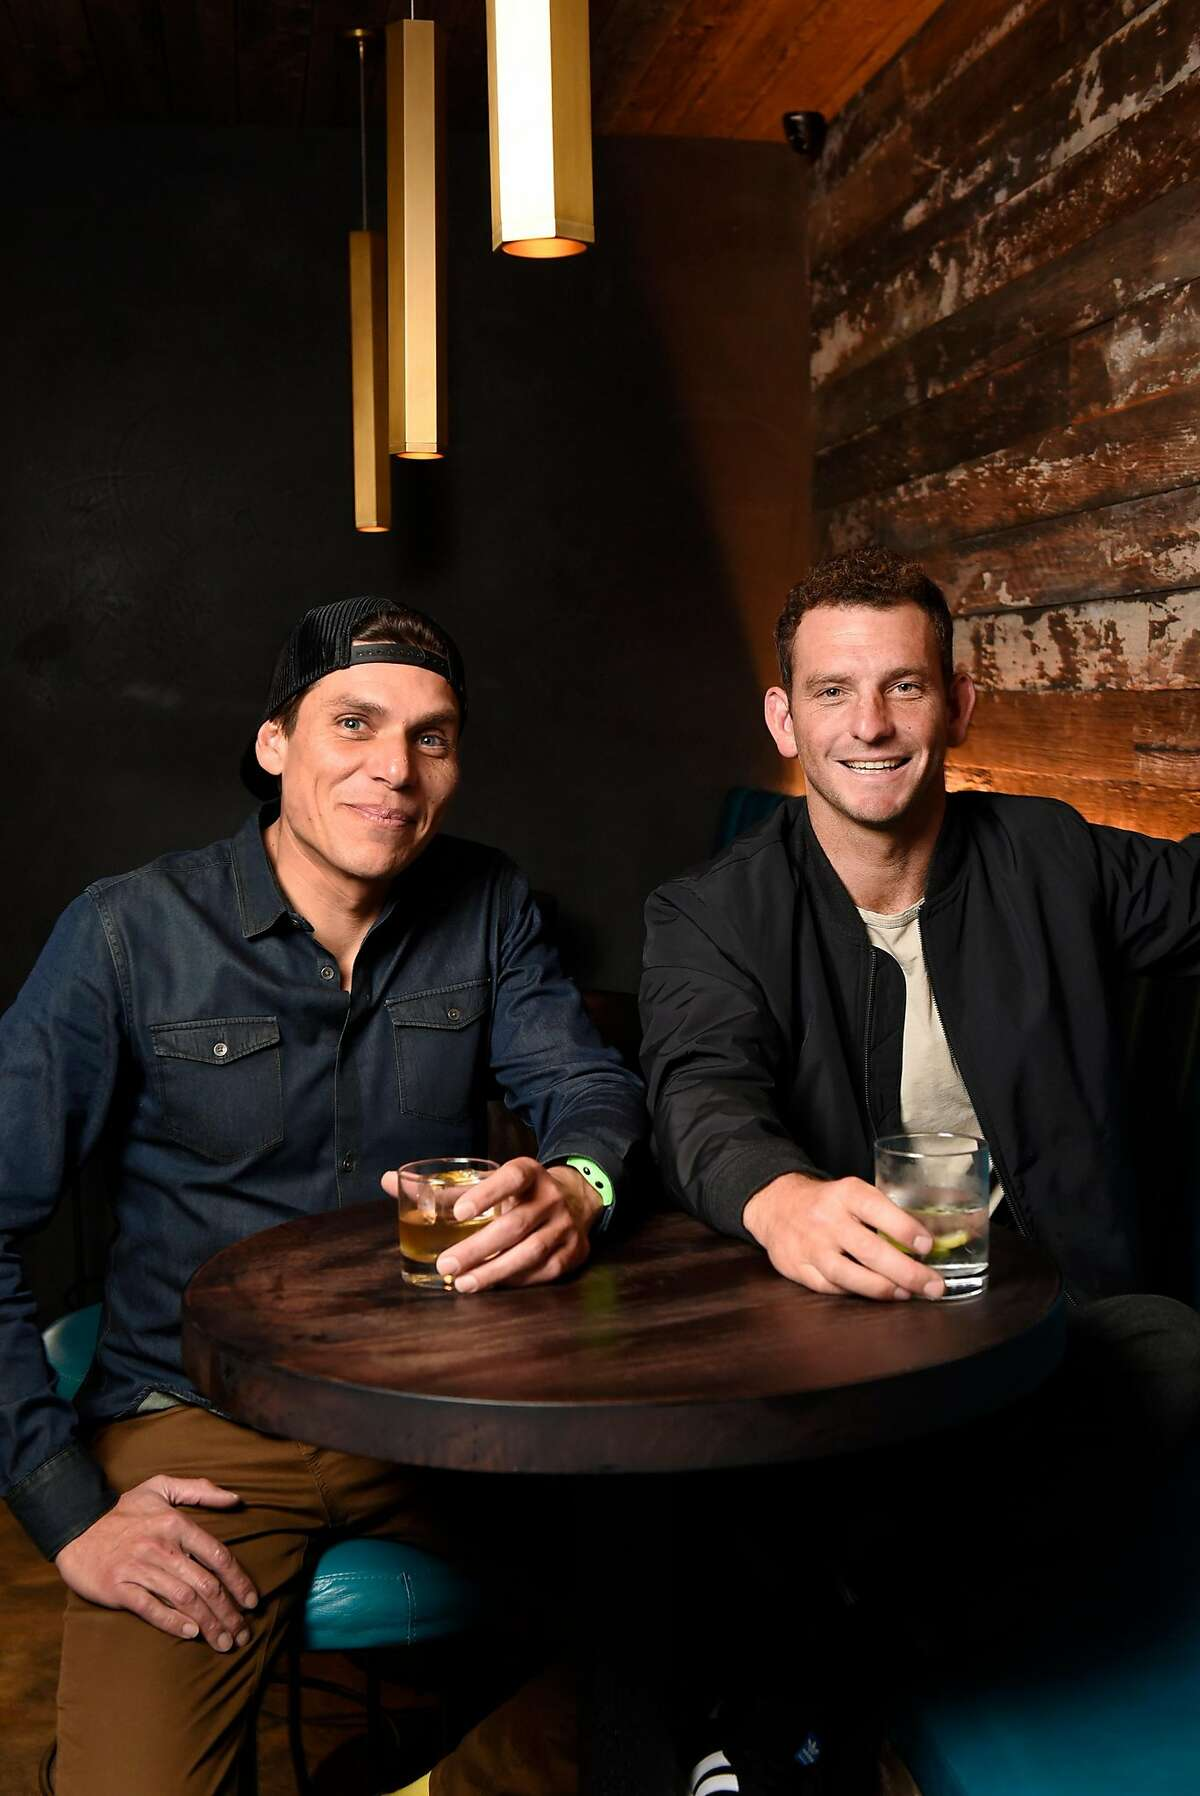 Head bartender Carlos Yturria, left, and owner Matt Lopez sit for a portrait at the White Cap cocktail bar in San Francisco, Calif., on Saturday January 6, 2018.